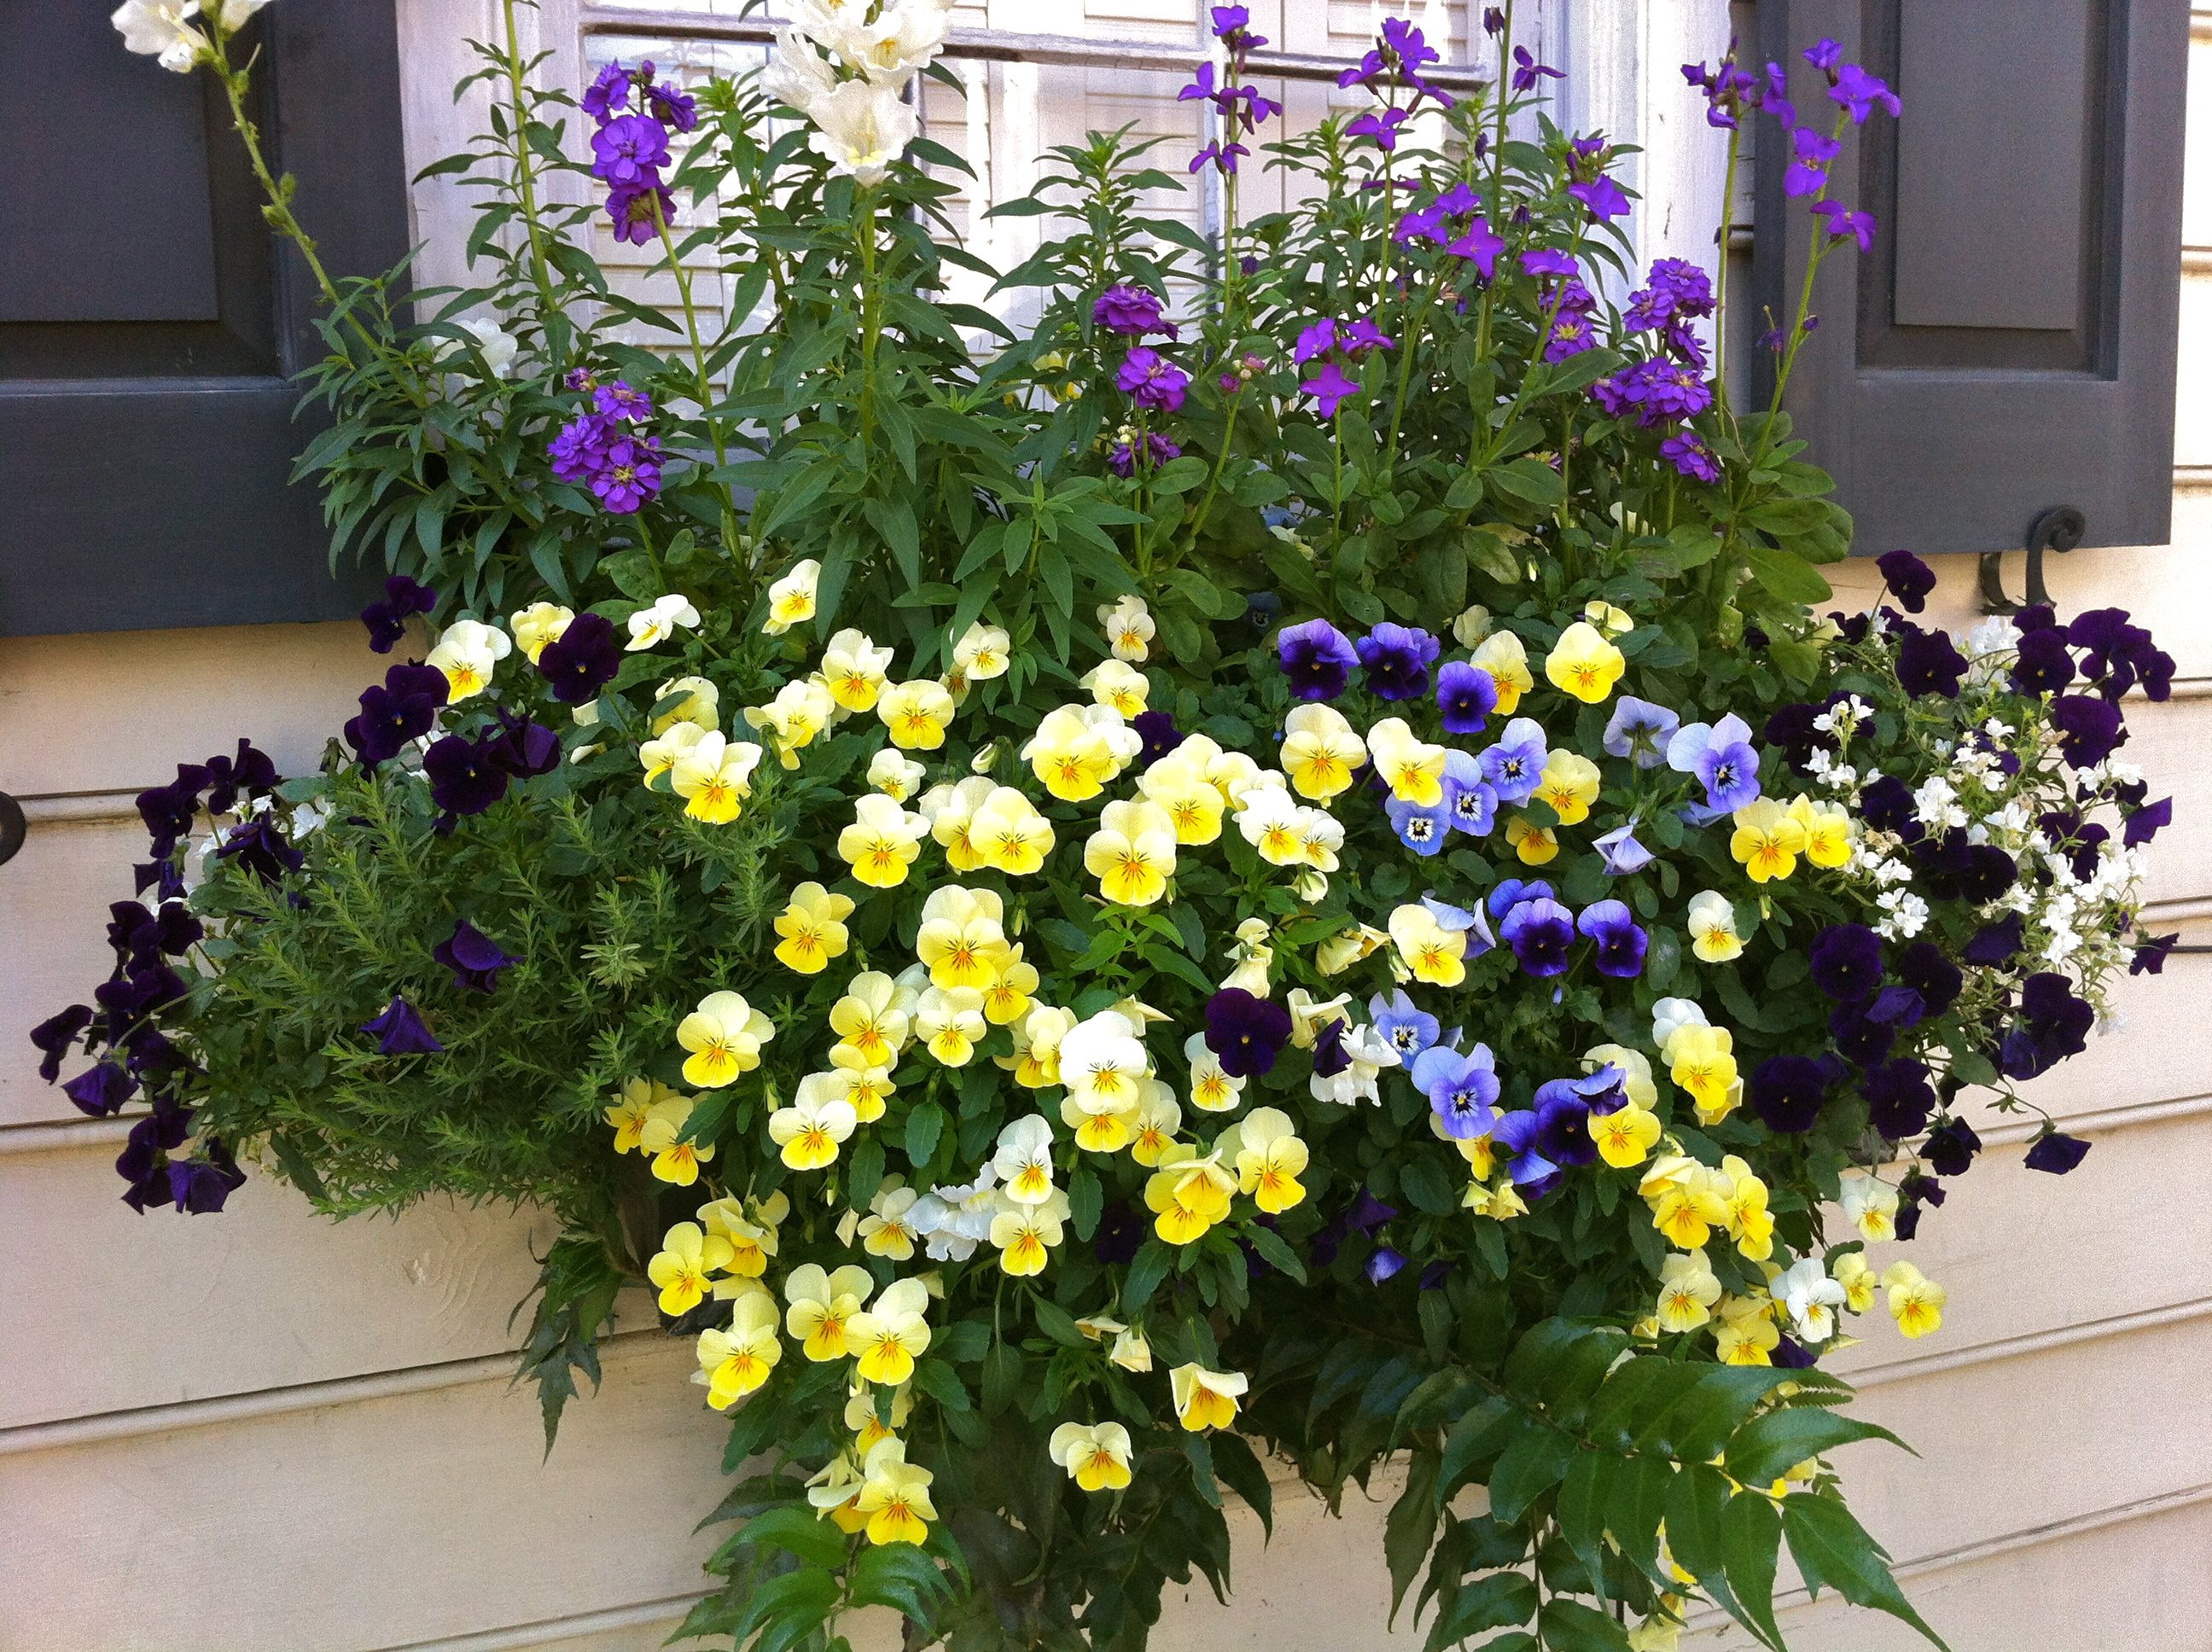 Viola rosemary holly fern and snapdragons are making a beautiful